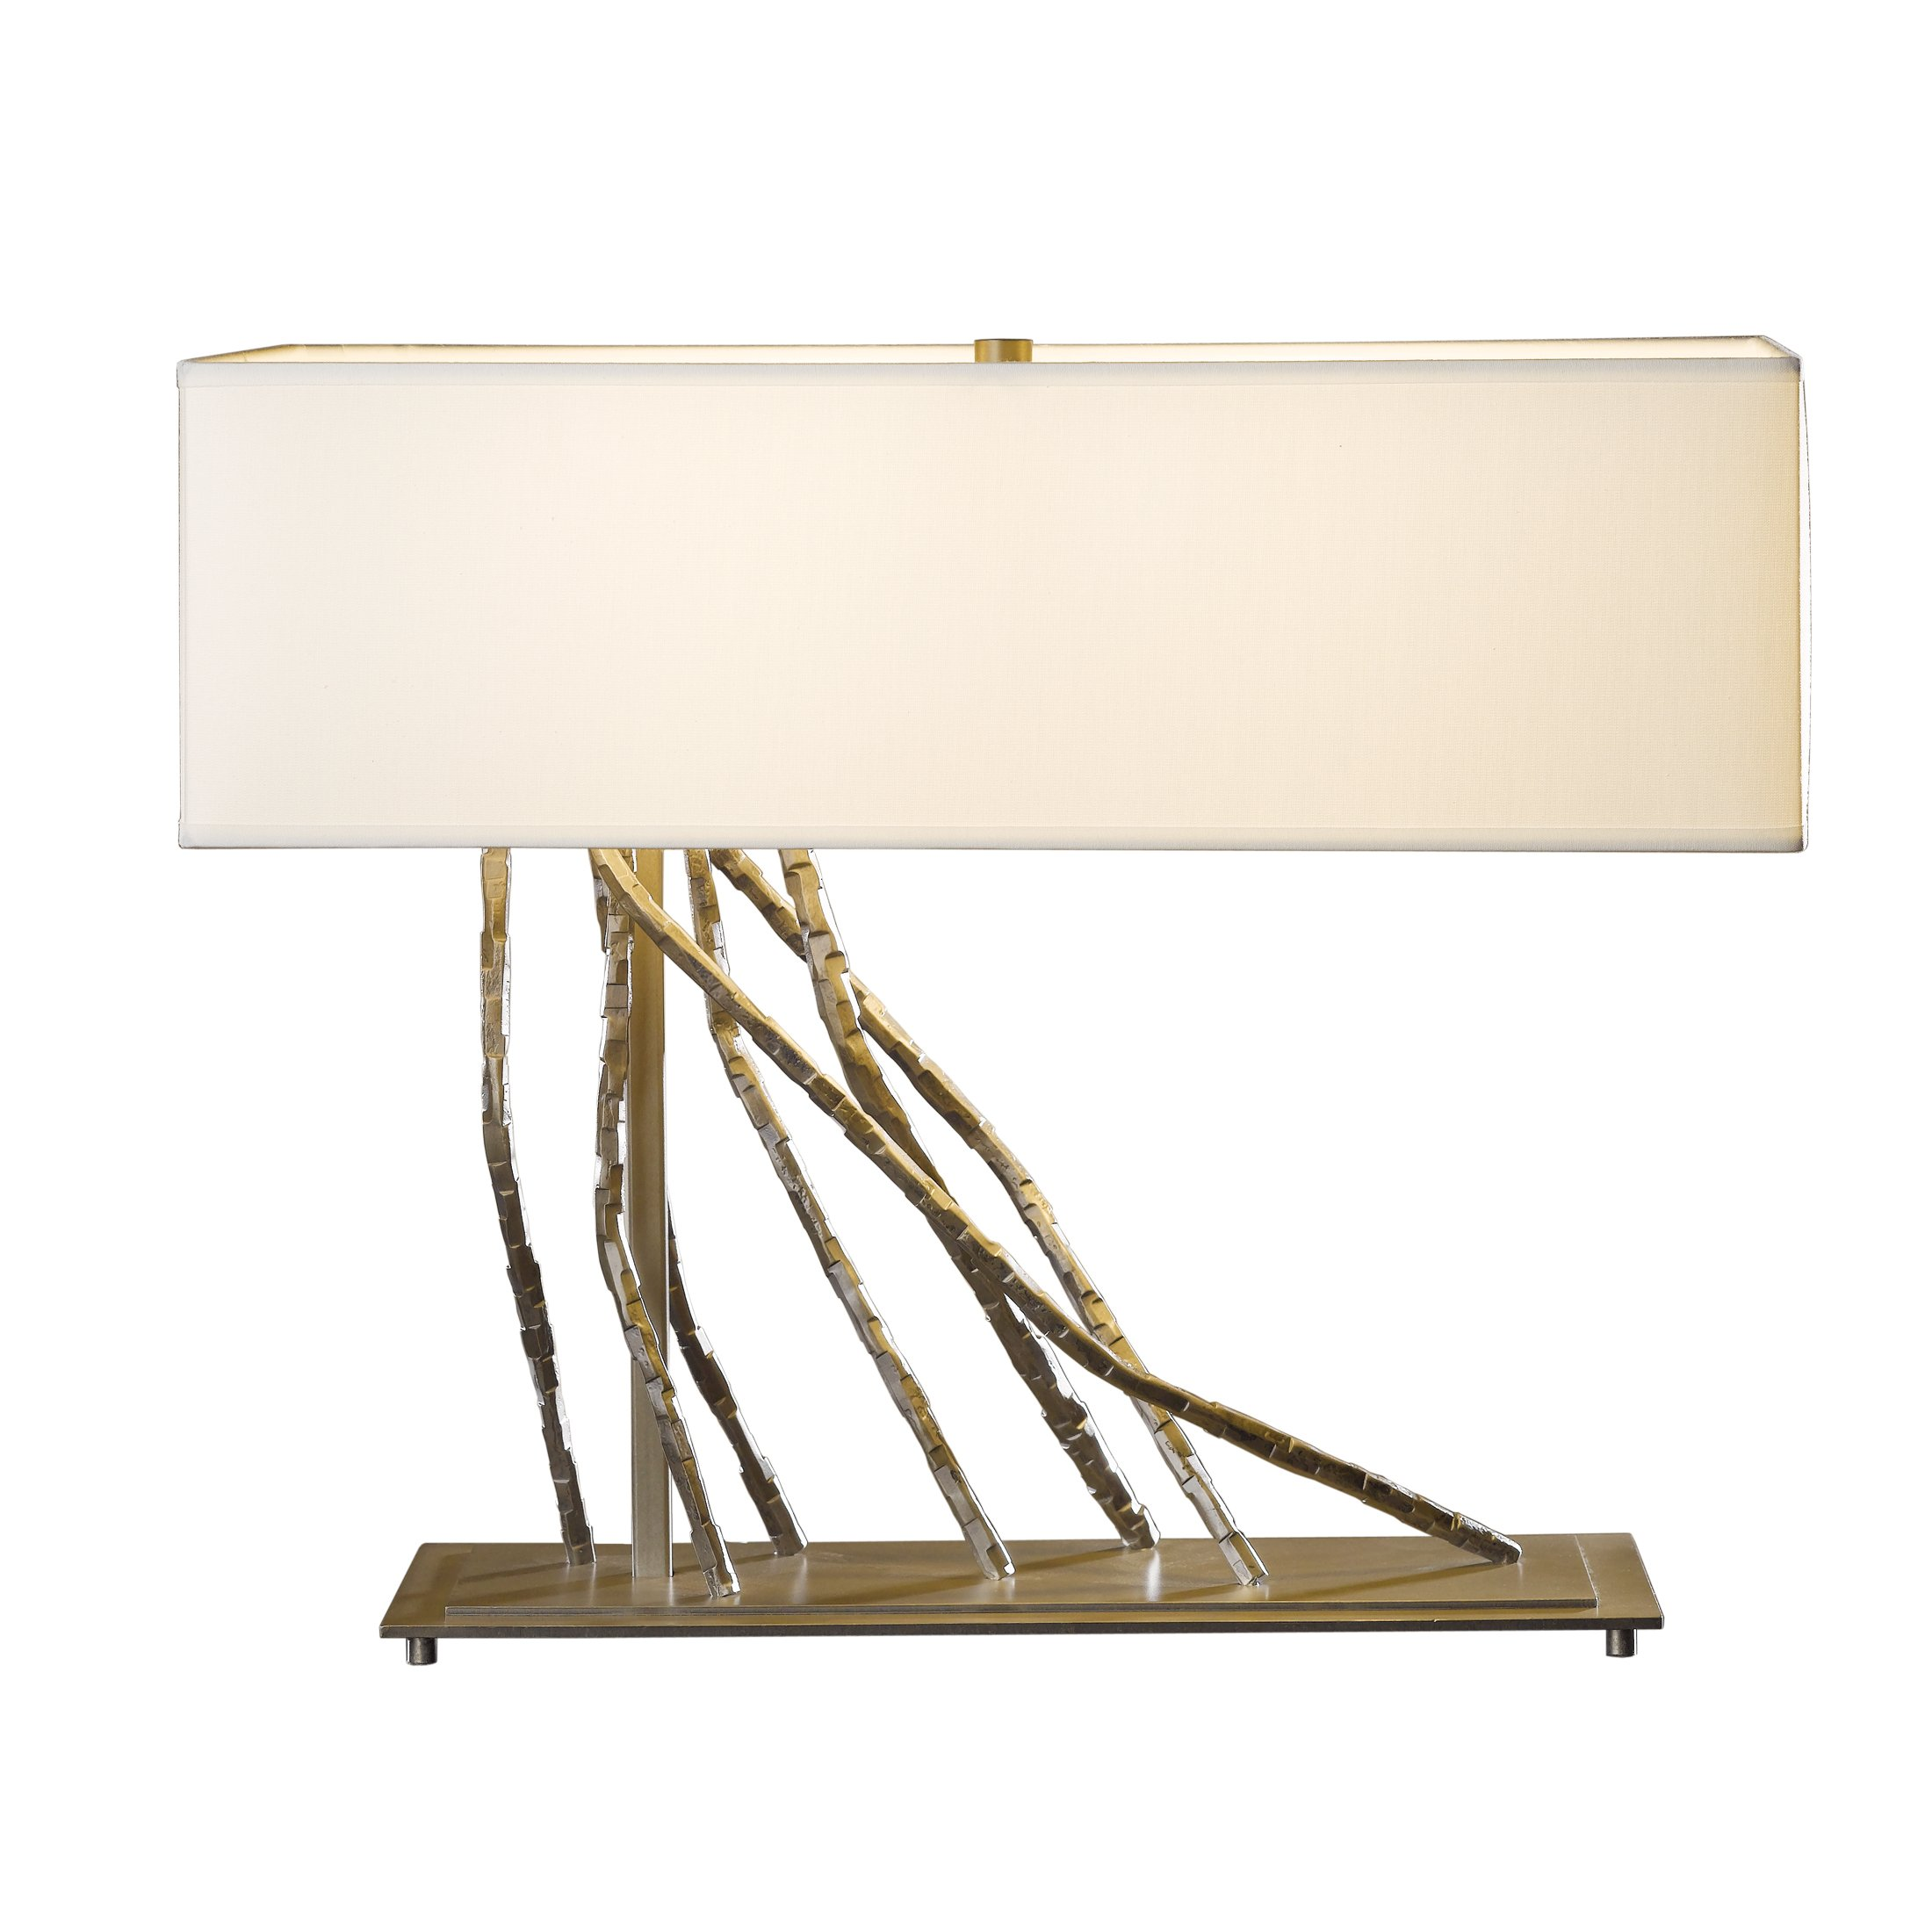 Hubbardton Forge Brindille Table Lamp 277660-1076, Soft Gold by Hubbardton Forge